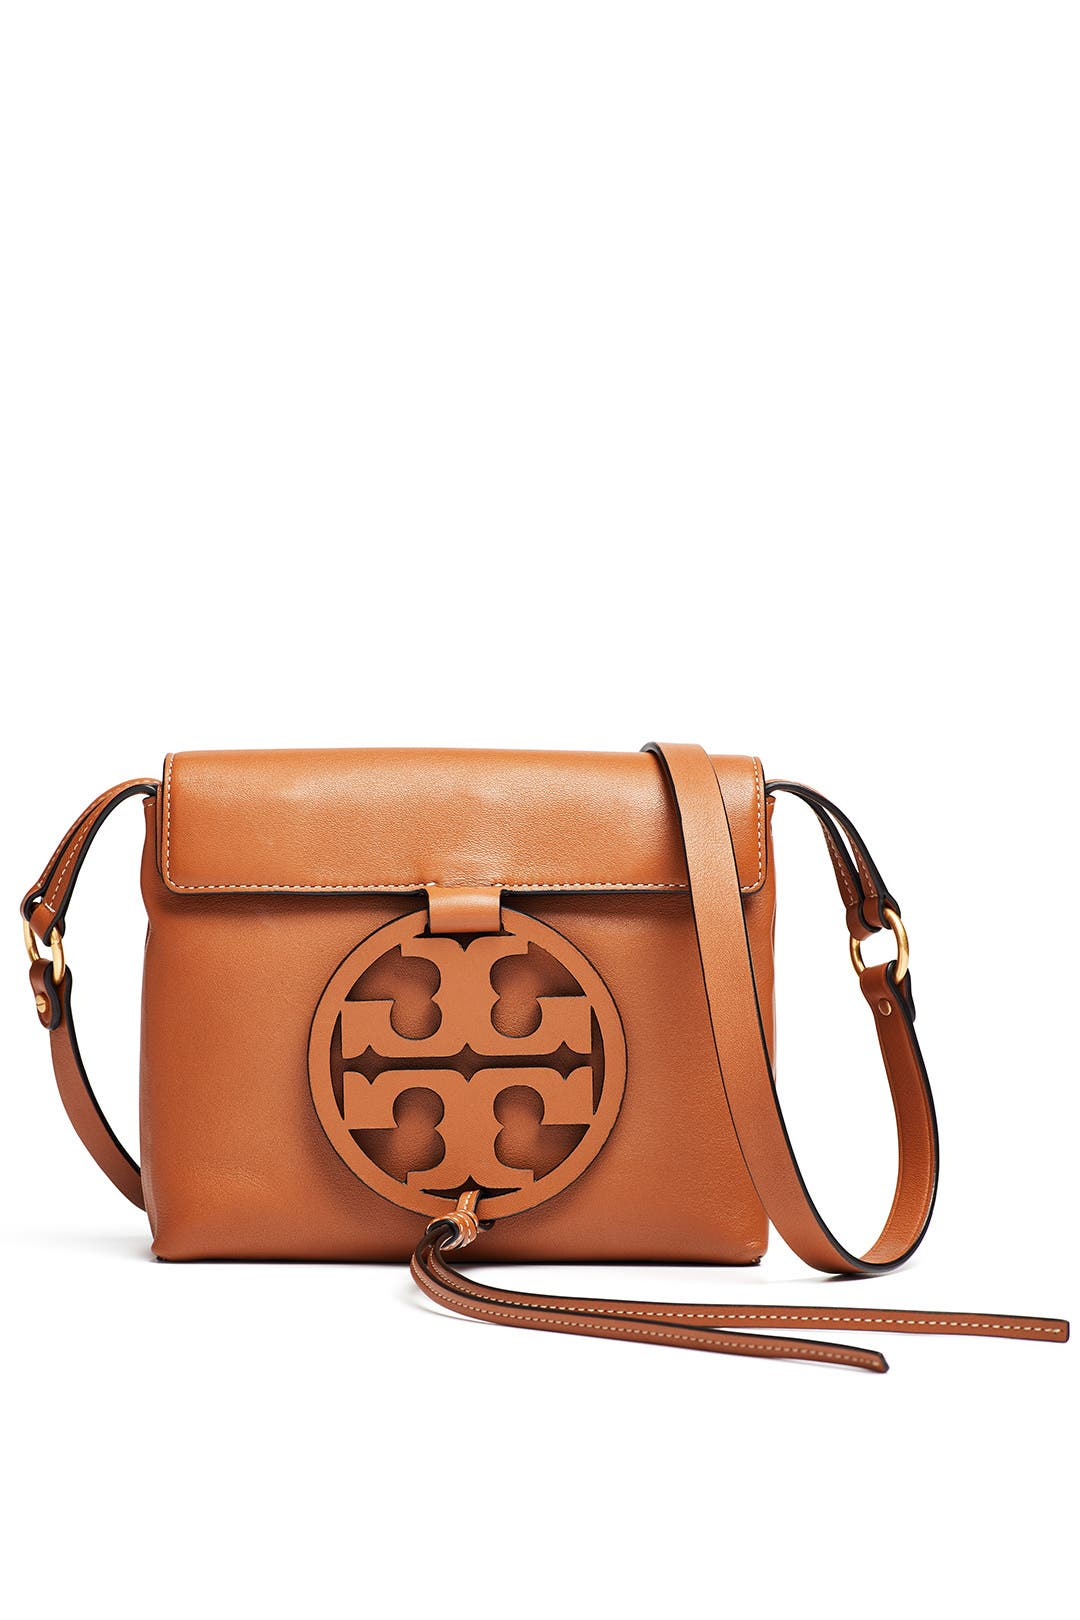 f2466579f9d6 Handbags - Tory Burch Accessories Great selection and prices for ...